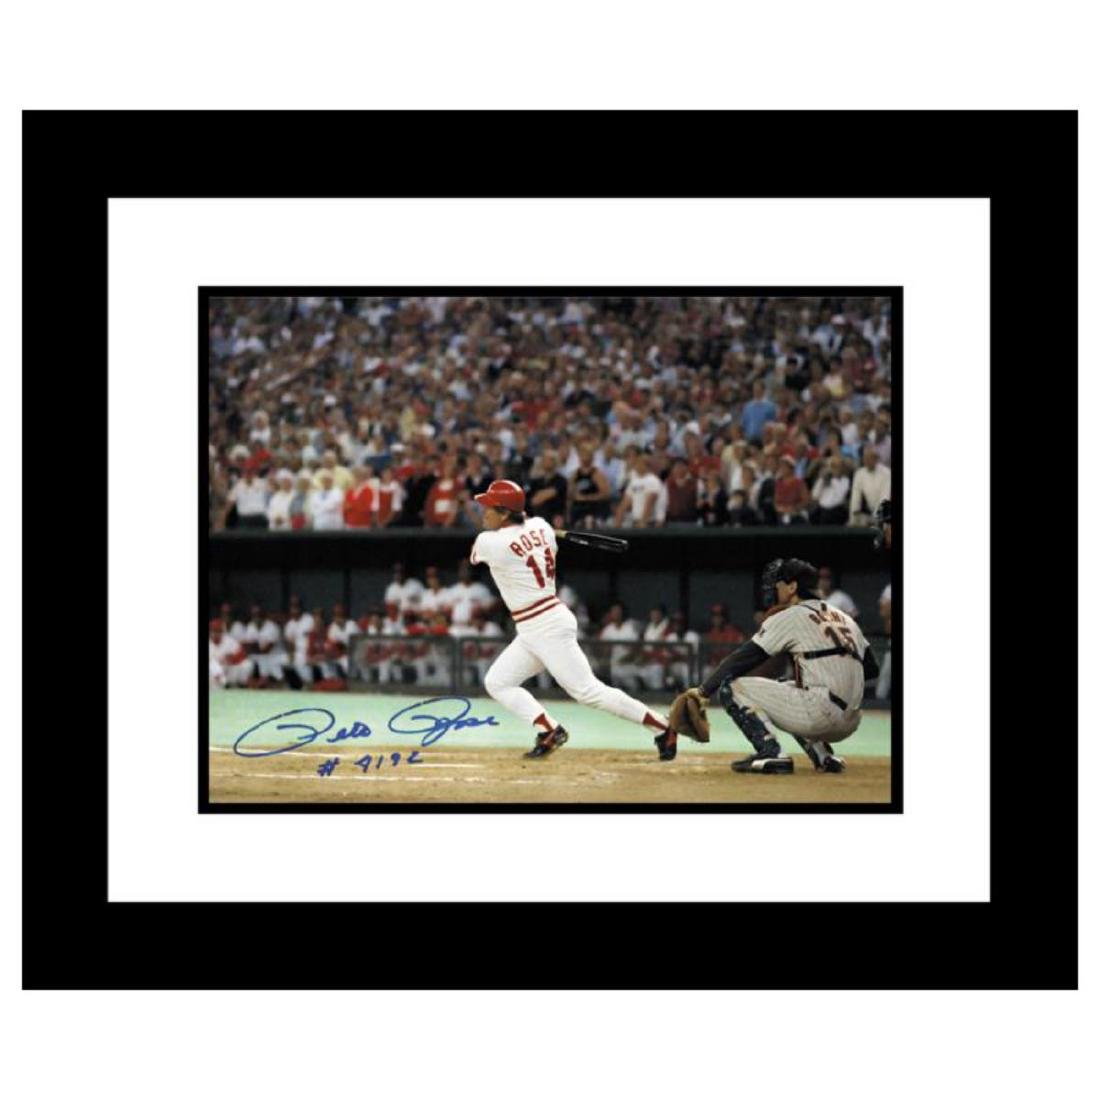 """""""Pete Rose 4192"""" - Framed Archival Photograph Featuring"""